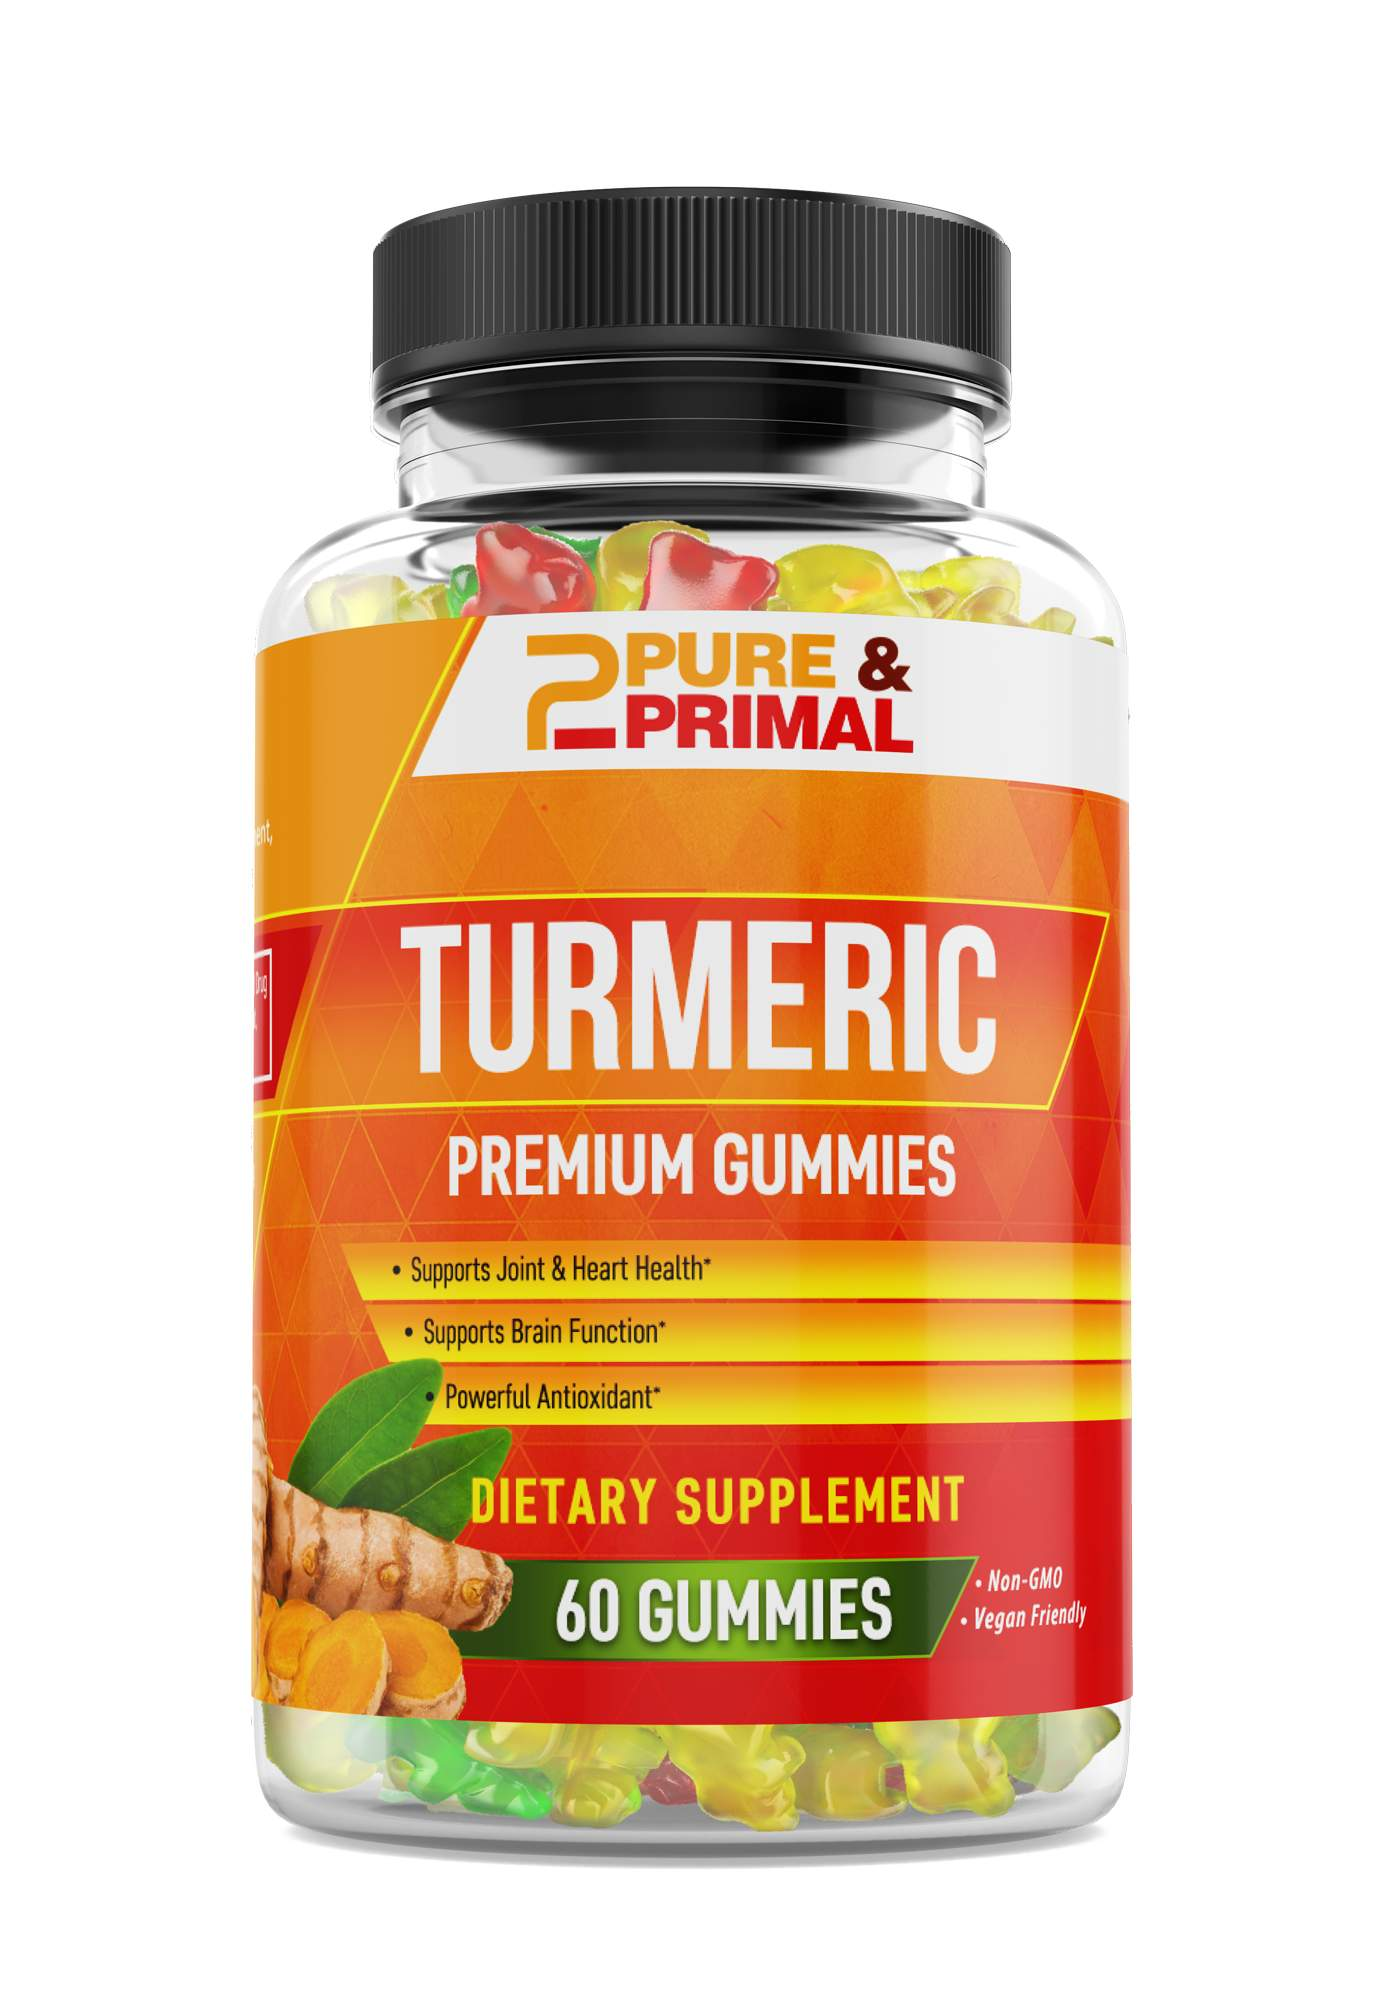 (2 Bottles) - Turmeric Gummies - High in Antioxidants - Helps fight inflammation